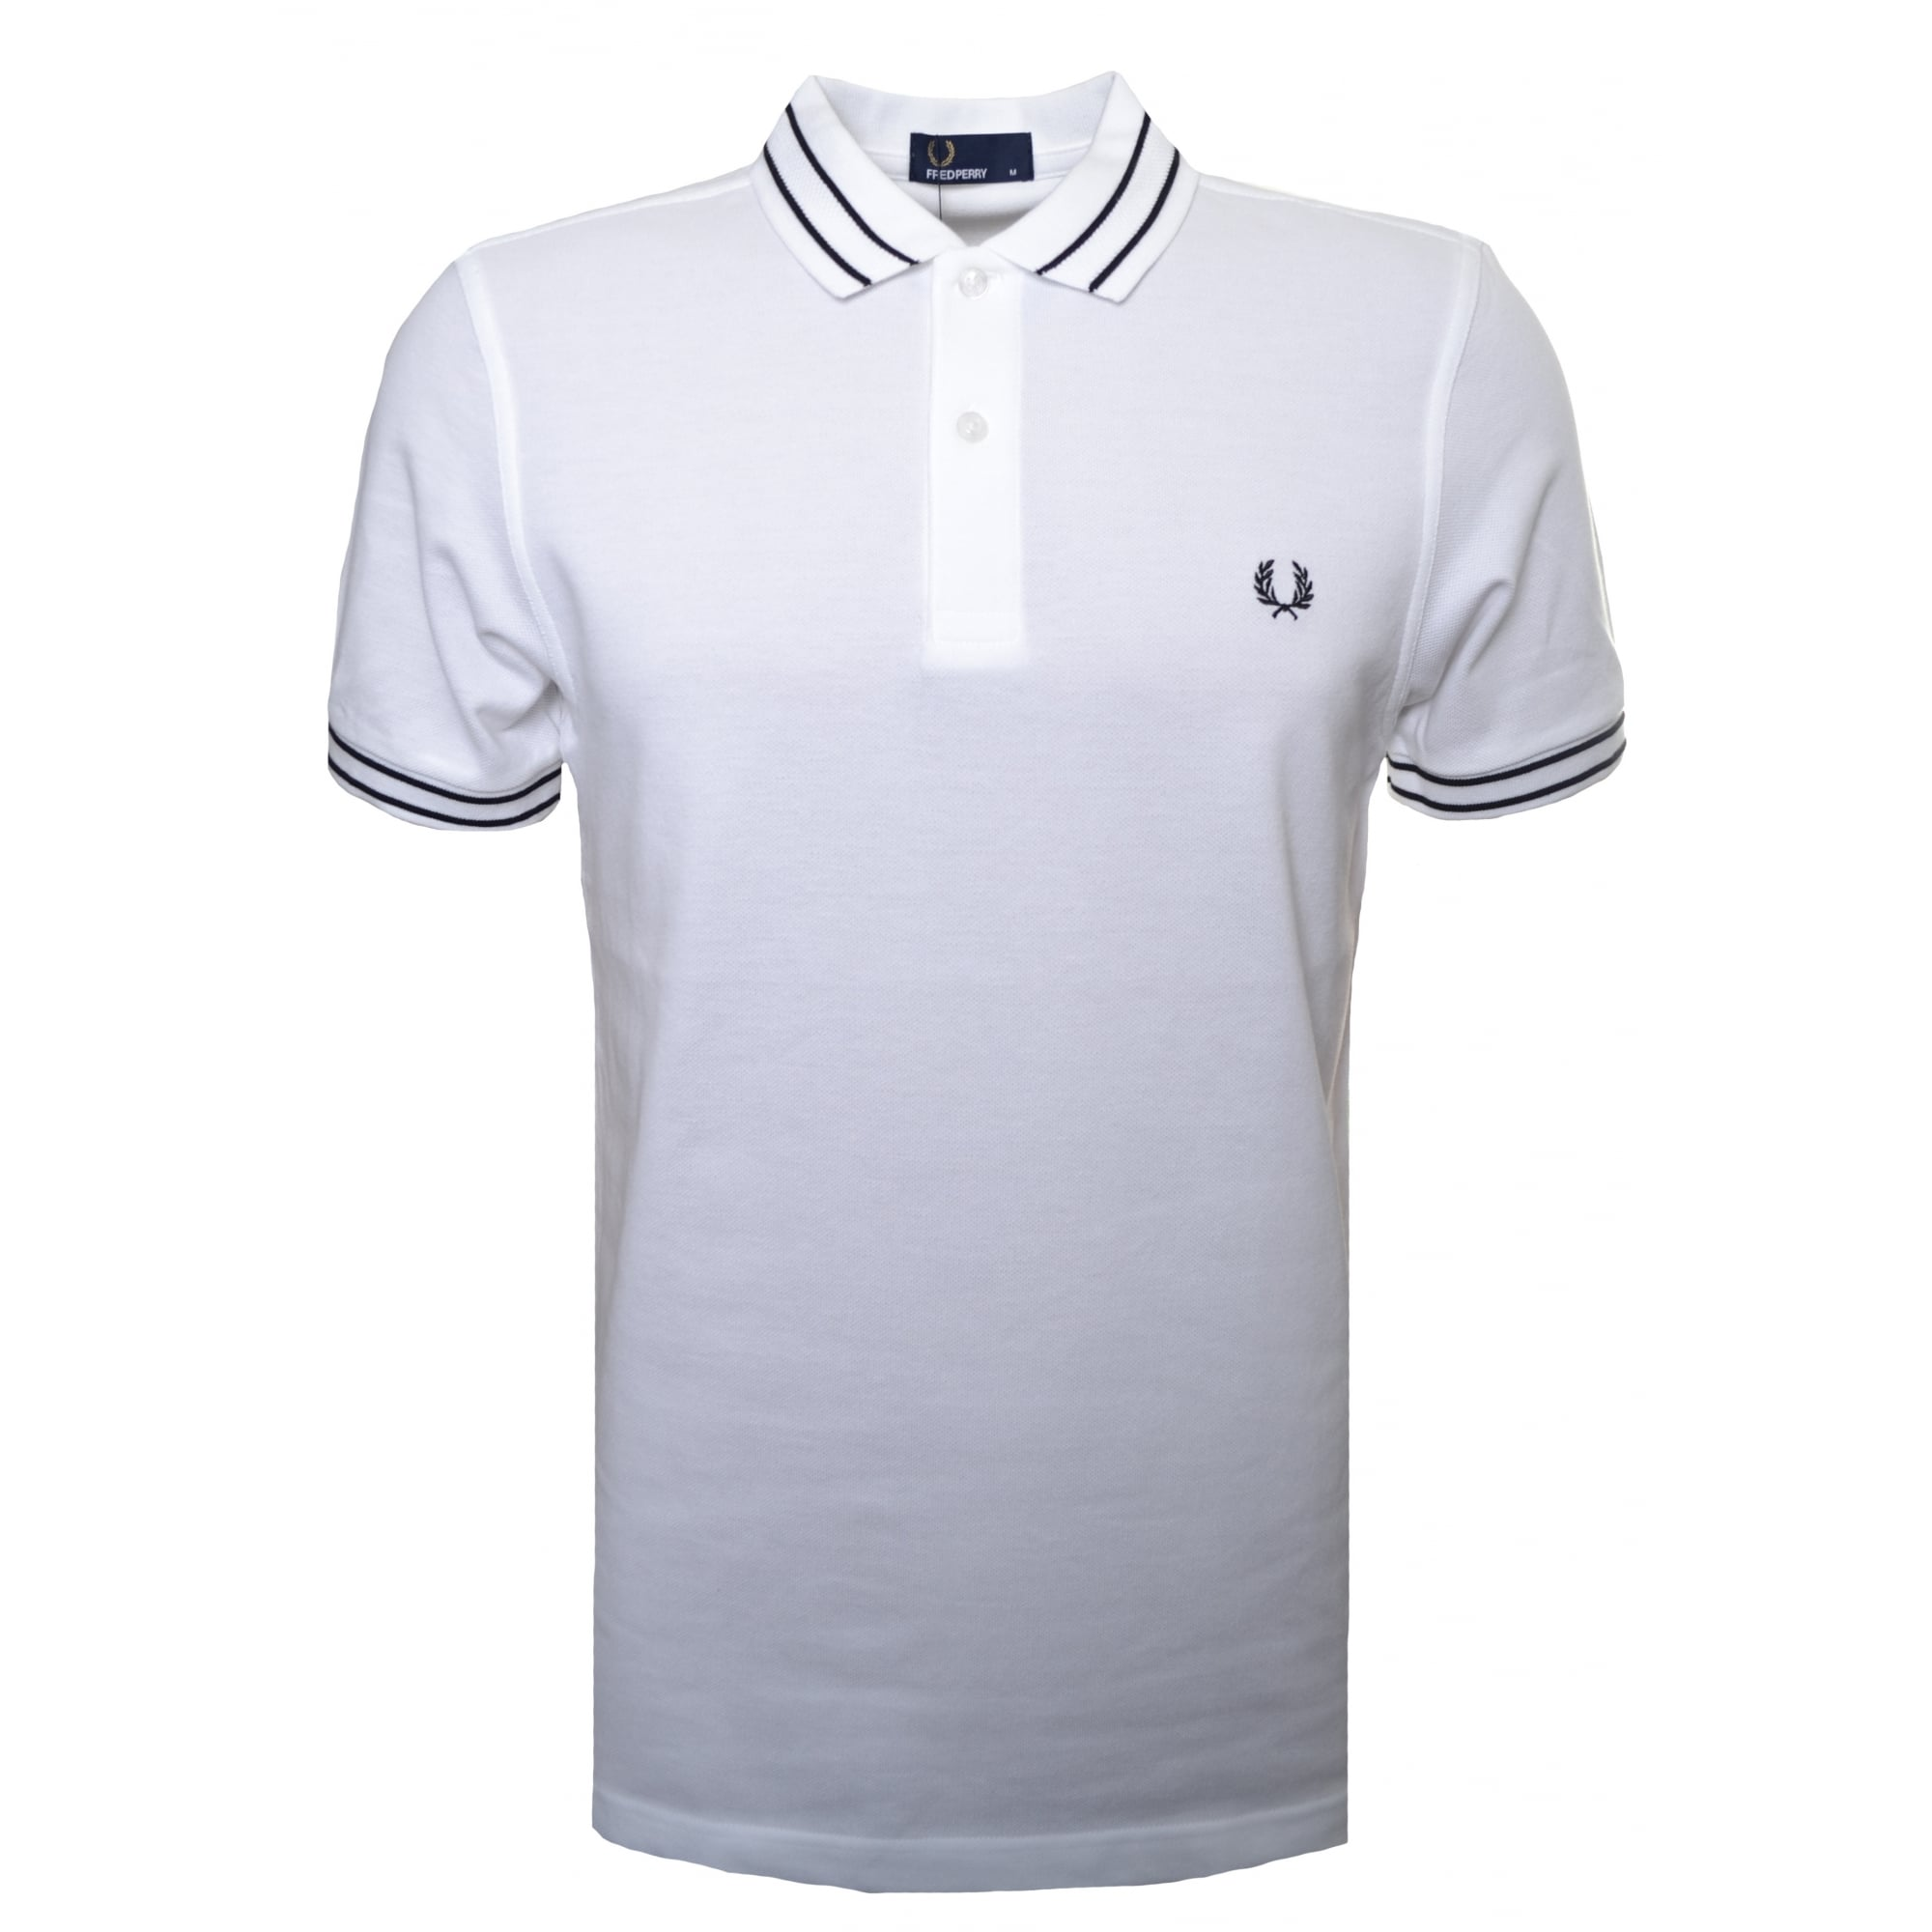 fred perry white shirt sale Shop Clothing & Shoes Online